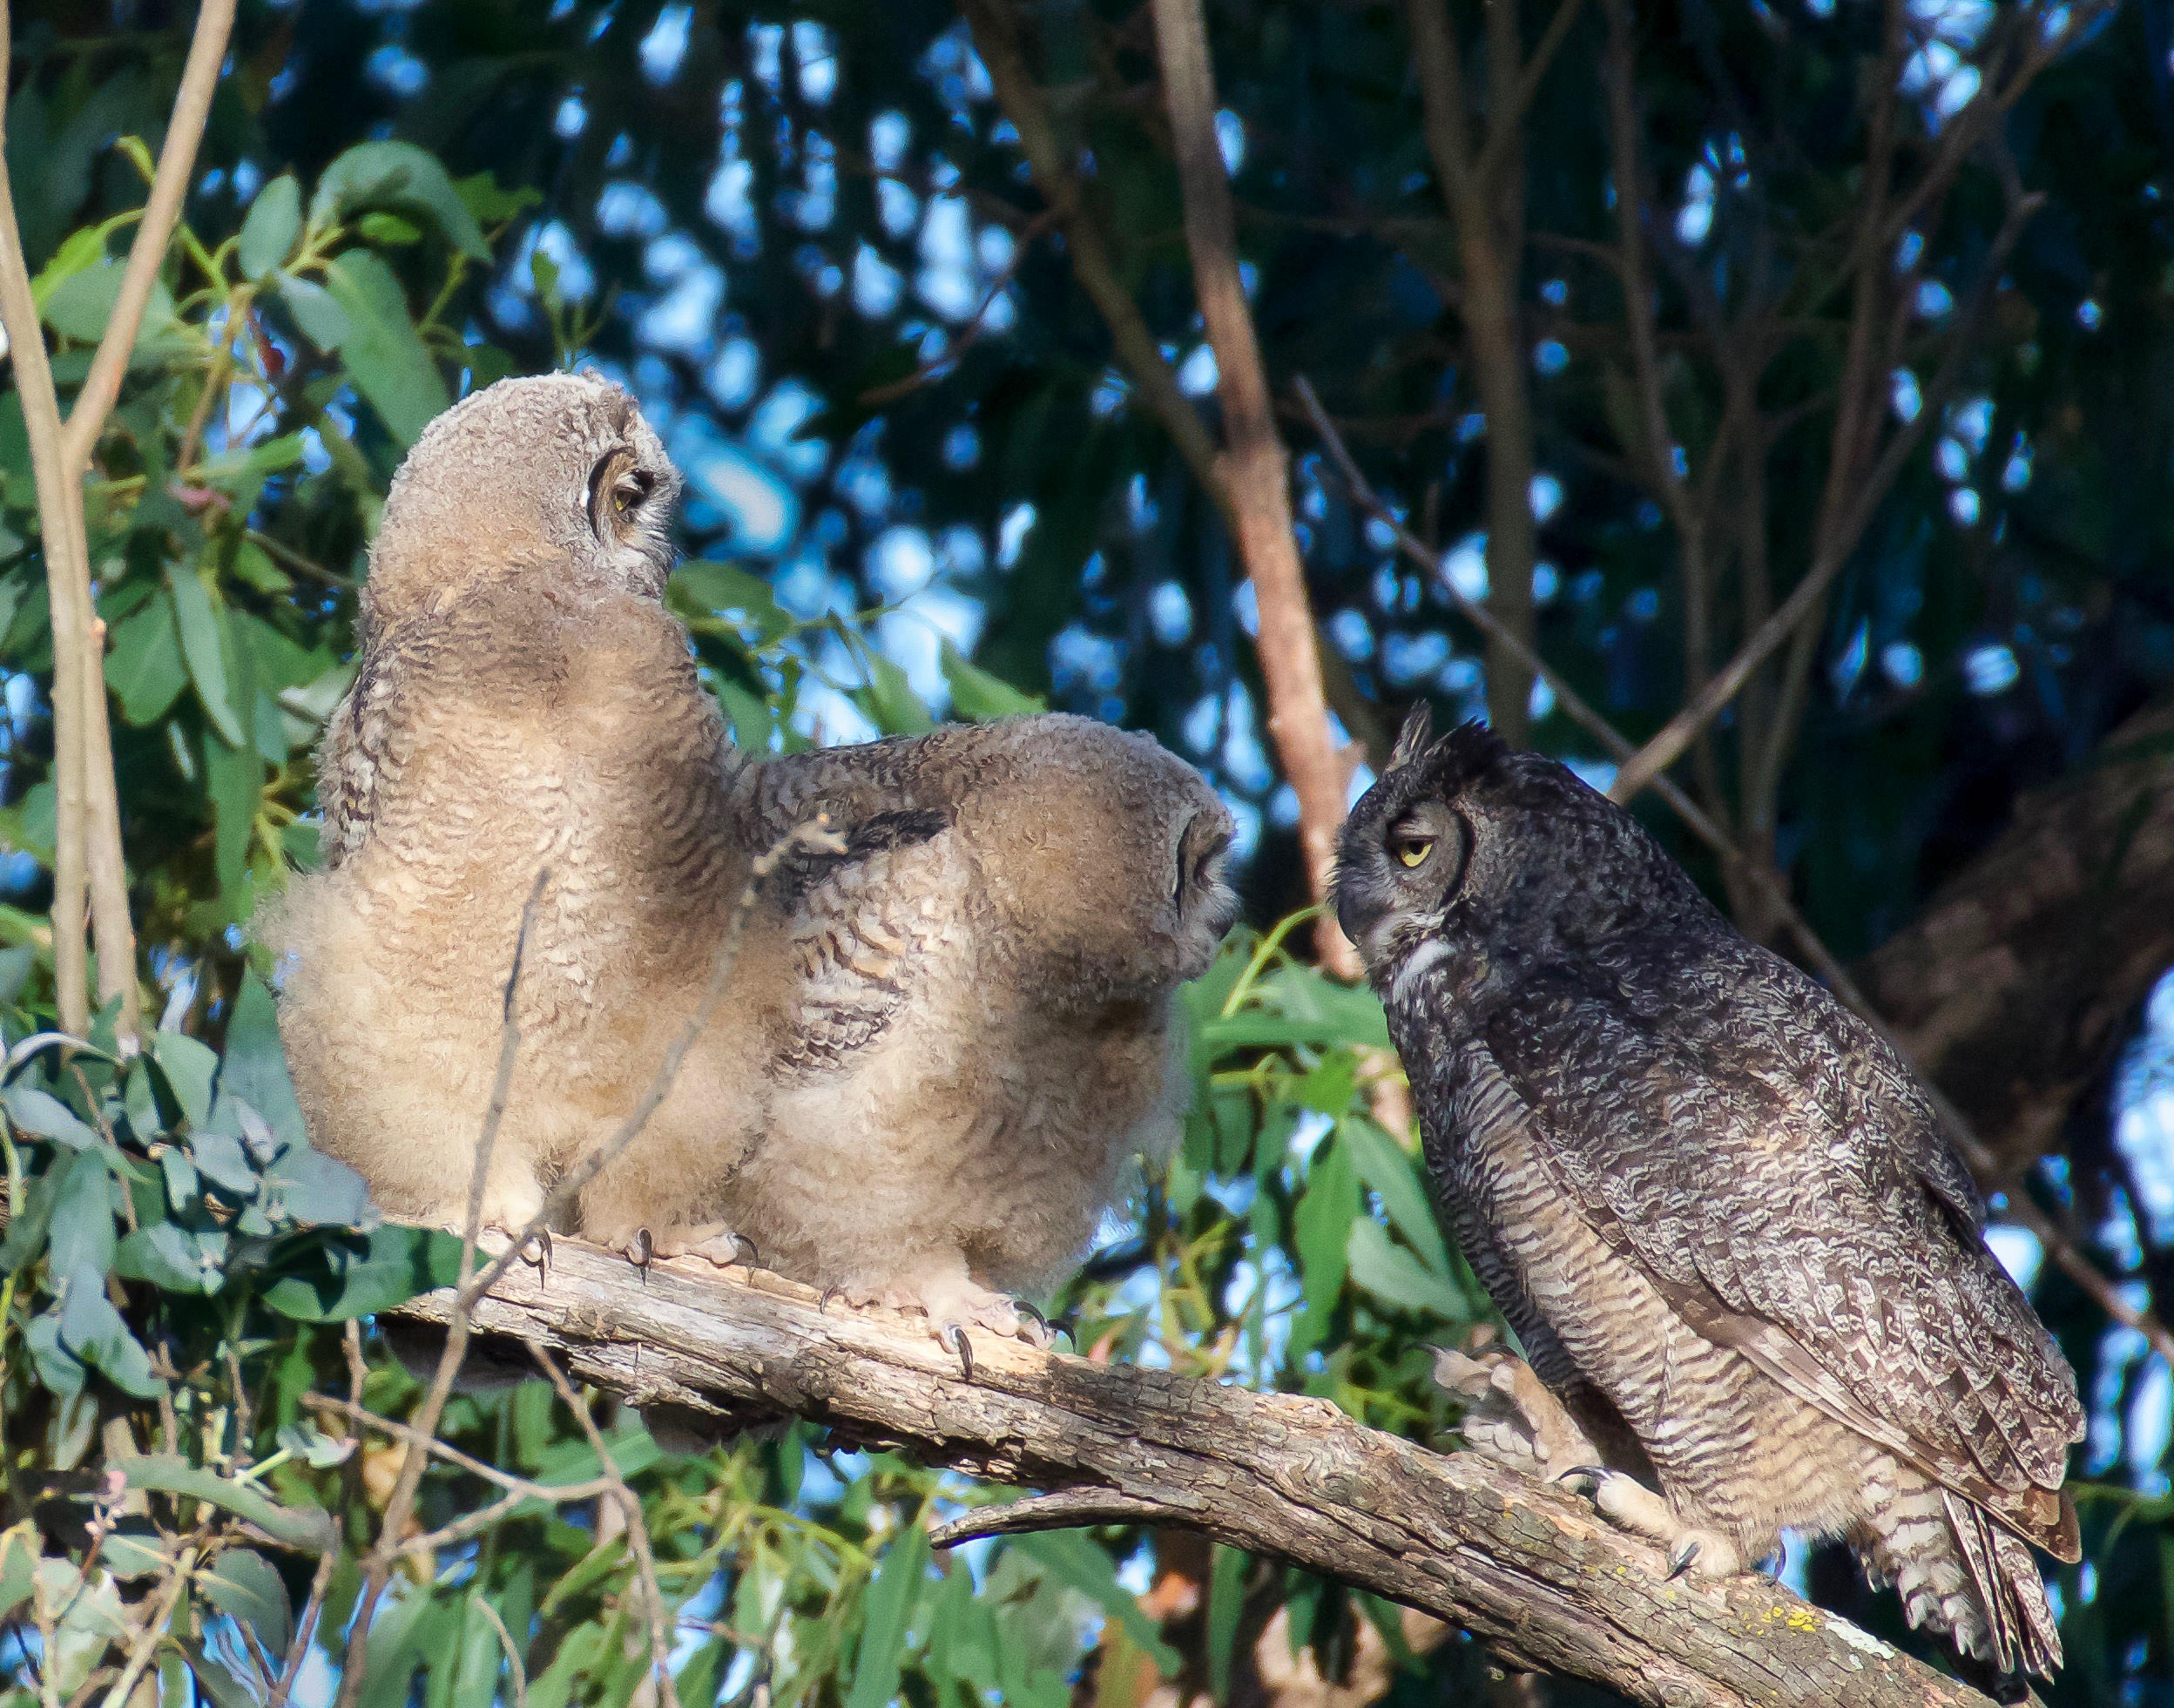 A mother Great Horned Owl with her two juvenile fledglings on a branch, looking at each other